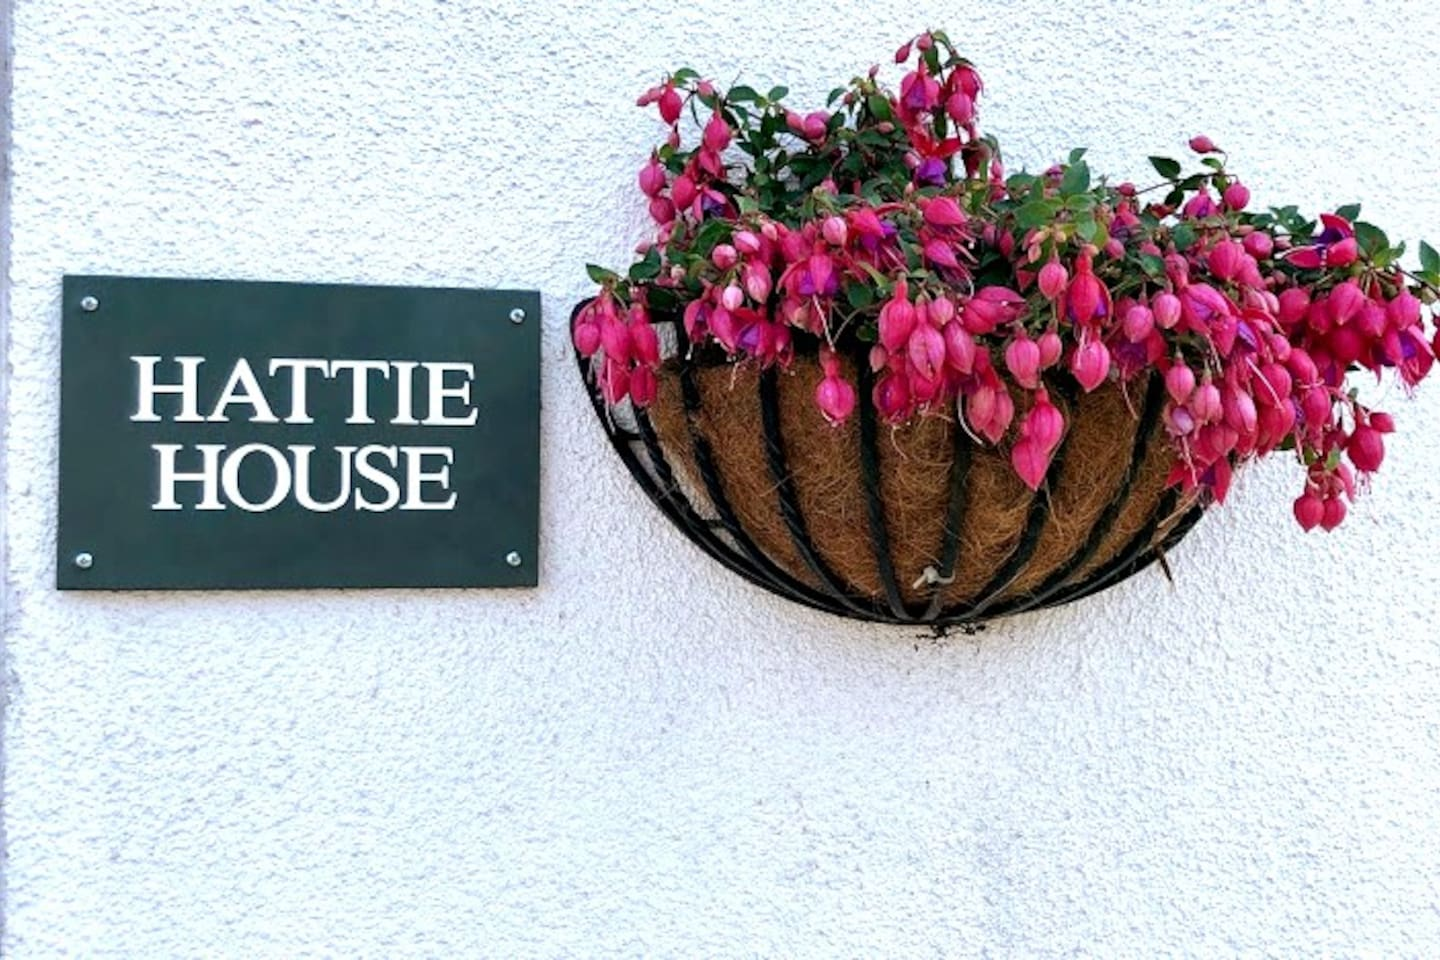 Welcome to Hattie House in Beautiful Leafy Lytham!  Only 5 mintues walk from the famous Lytham Windmill, The Green and The Promenade!